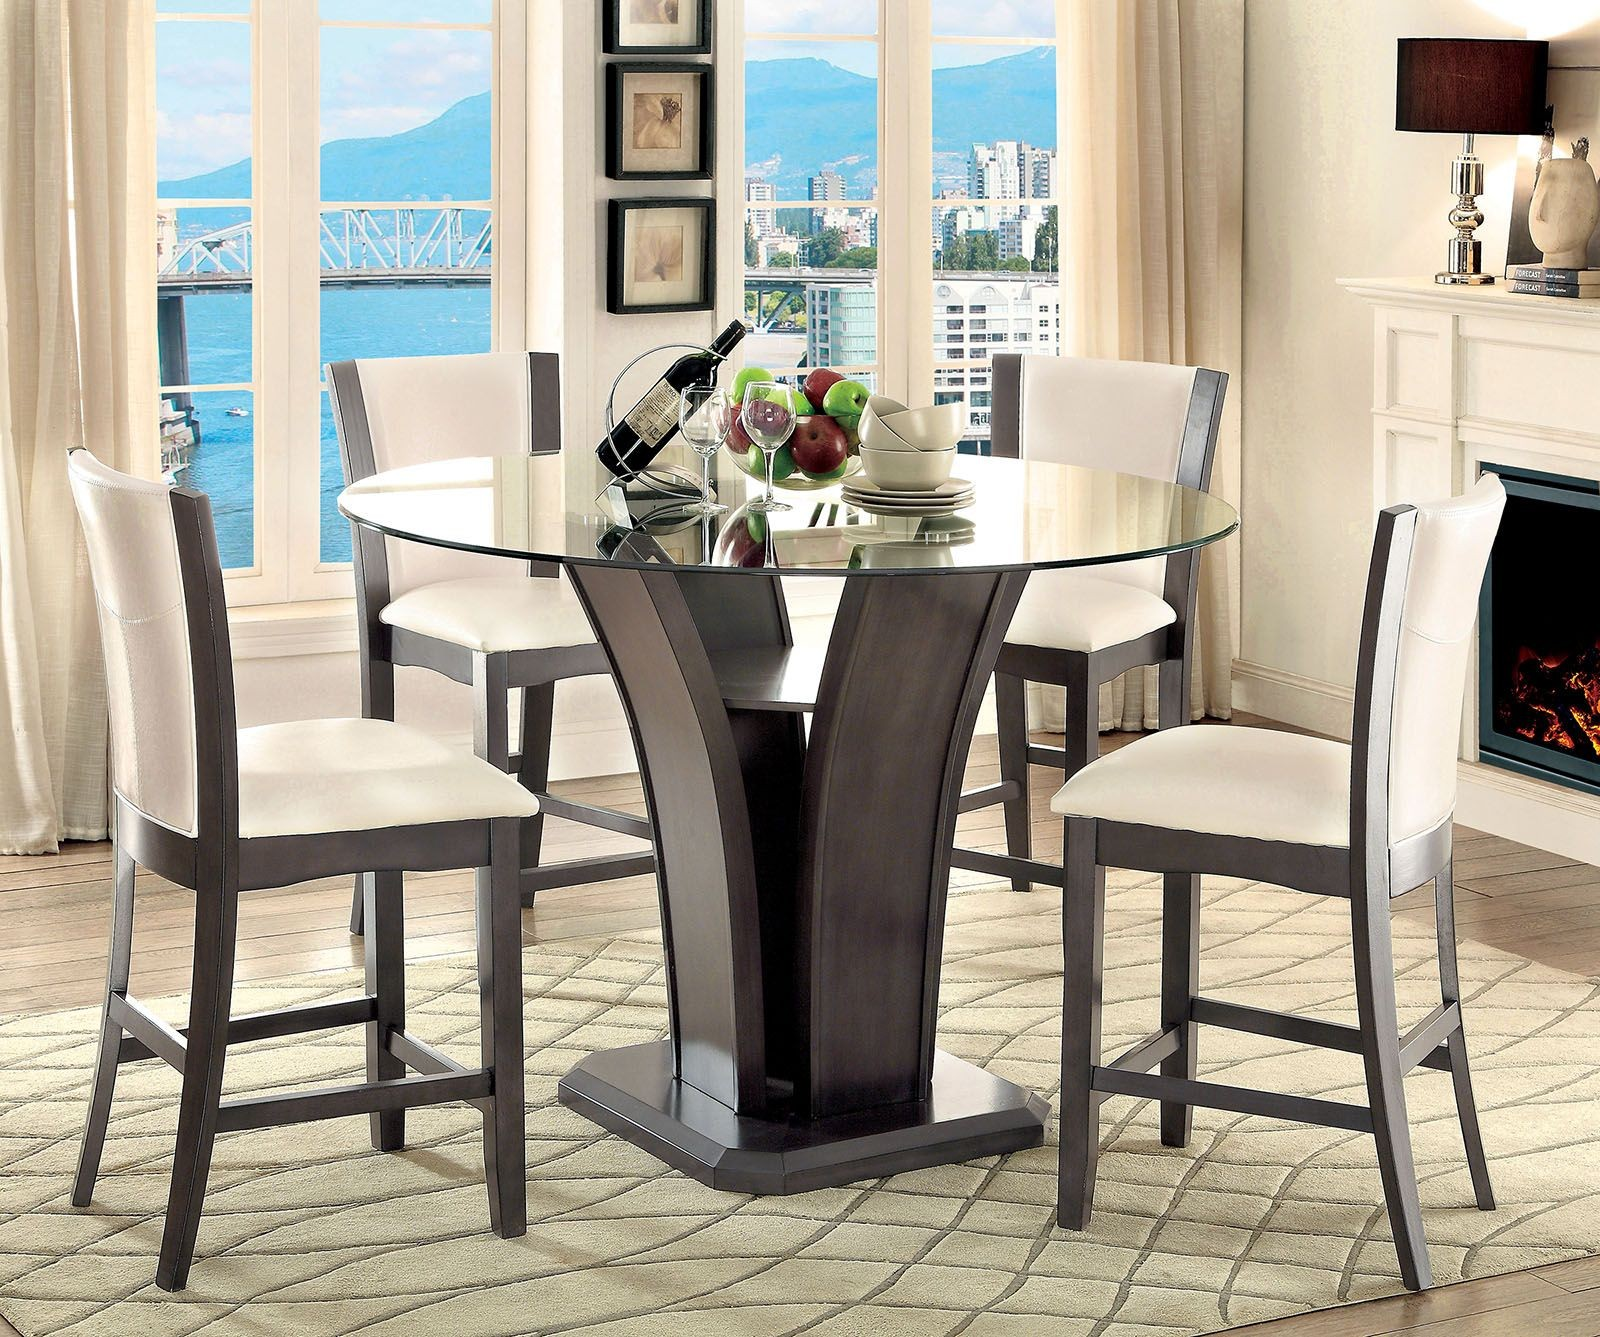 Counter Dining Room Sets: Manhattan III Gray Round Counter Height Dining Room Set